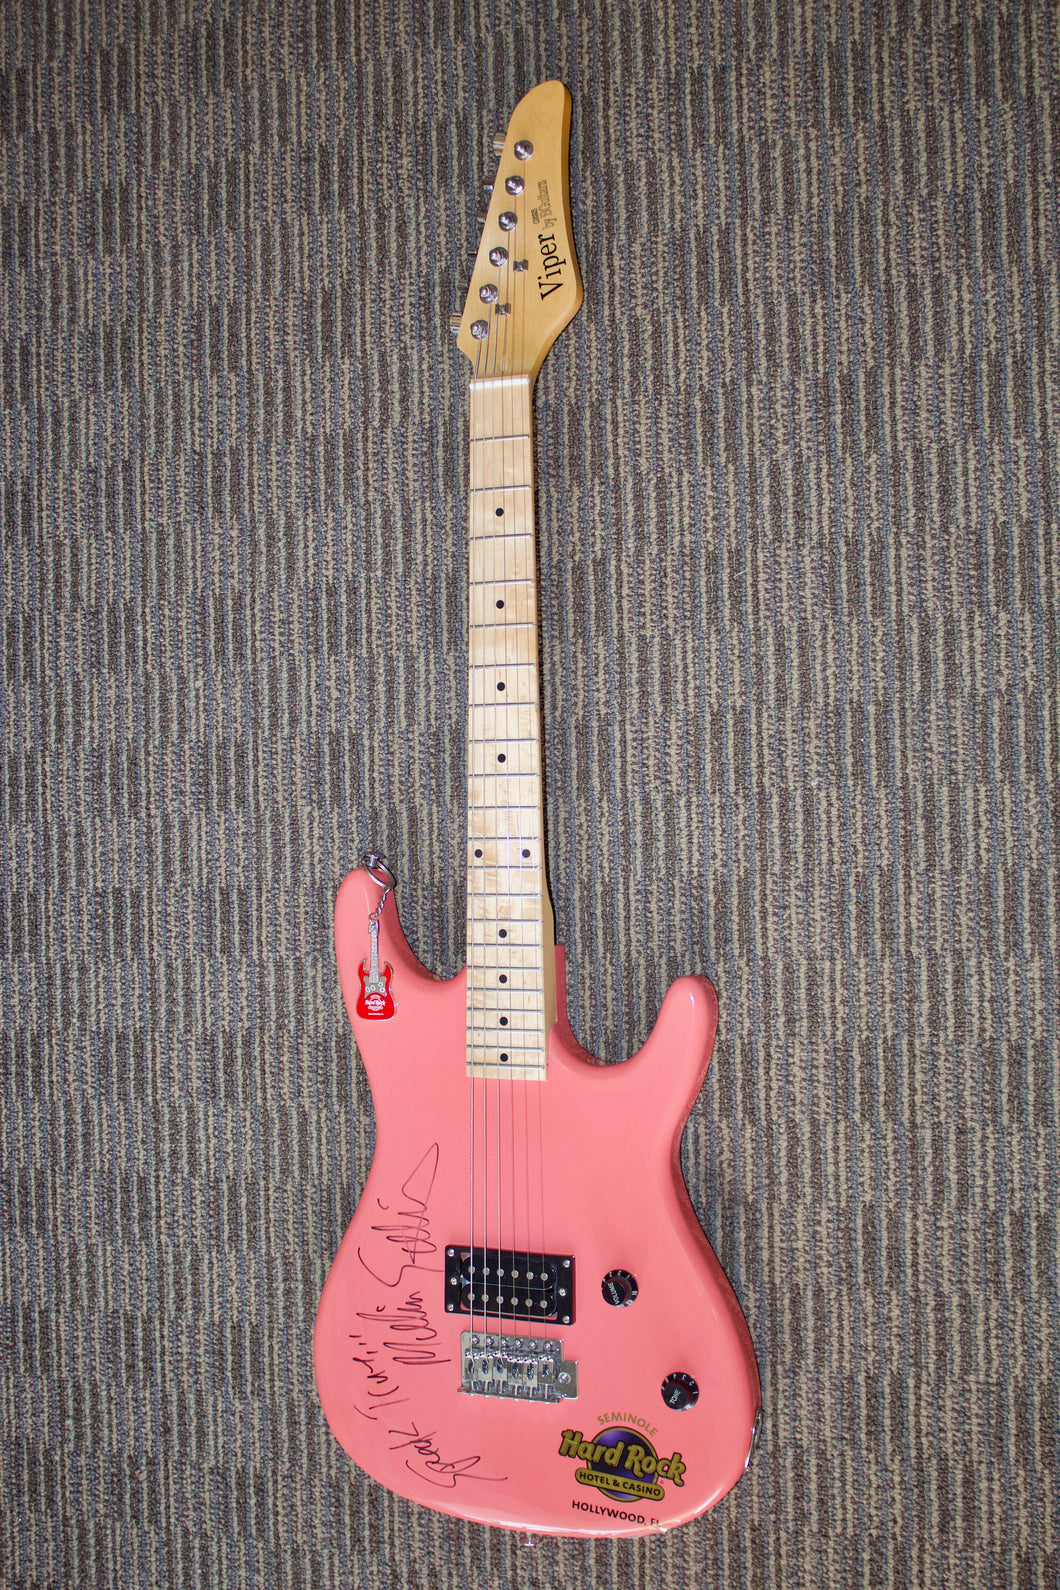 Viper GE93 Electric Guitar autographed by Melissa Etheridge